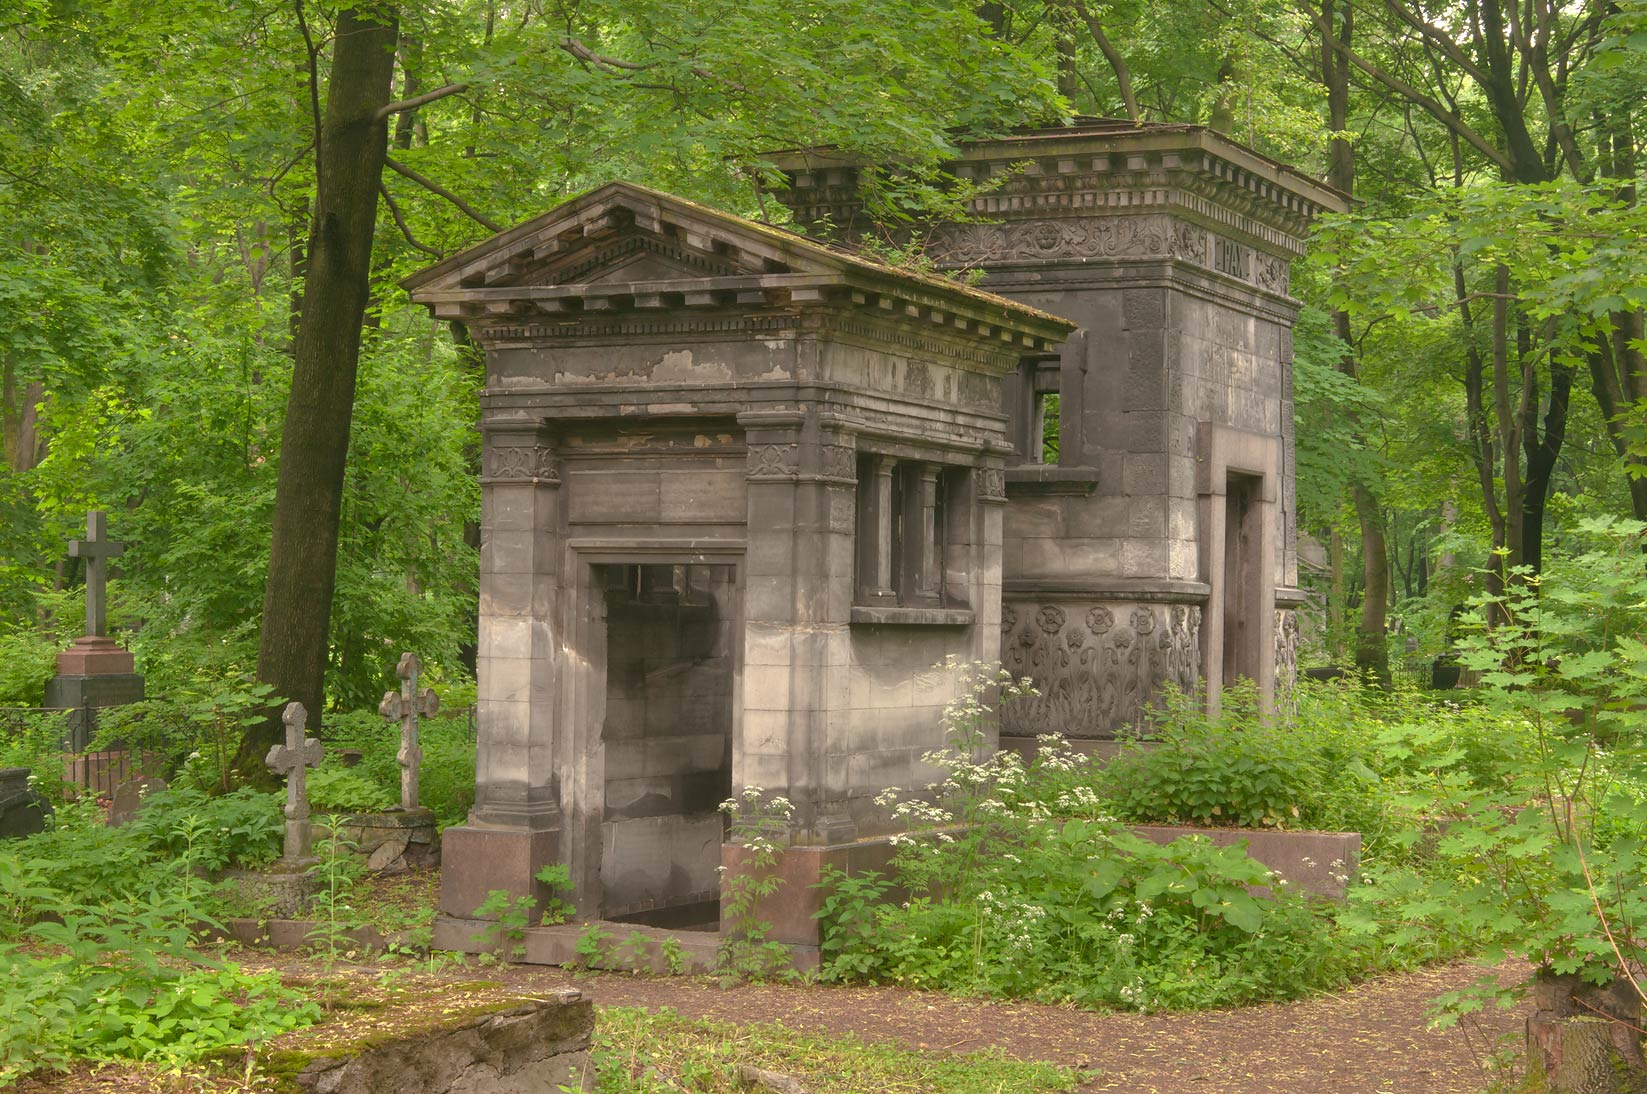 Photo 964 10 Mausoleum In Novodevichye Cemetery At